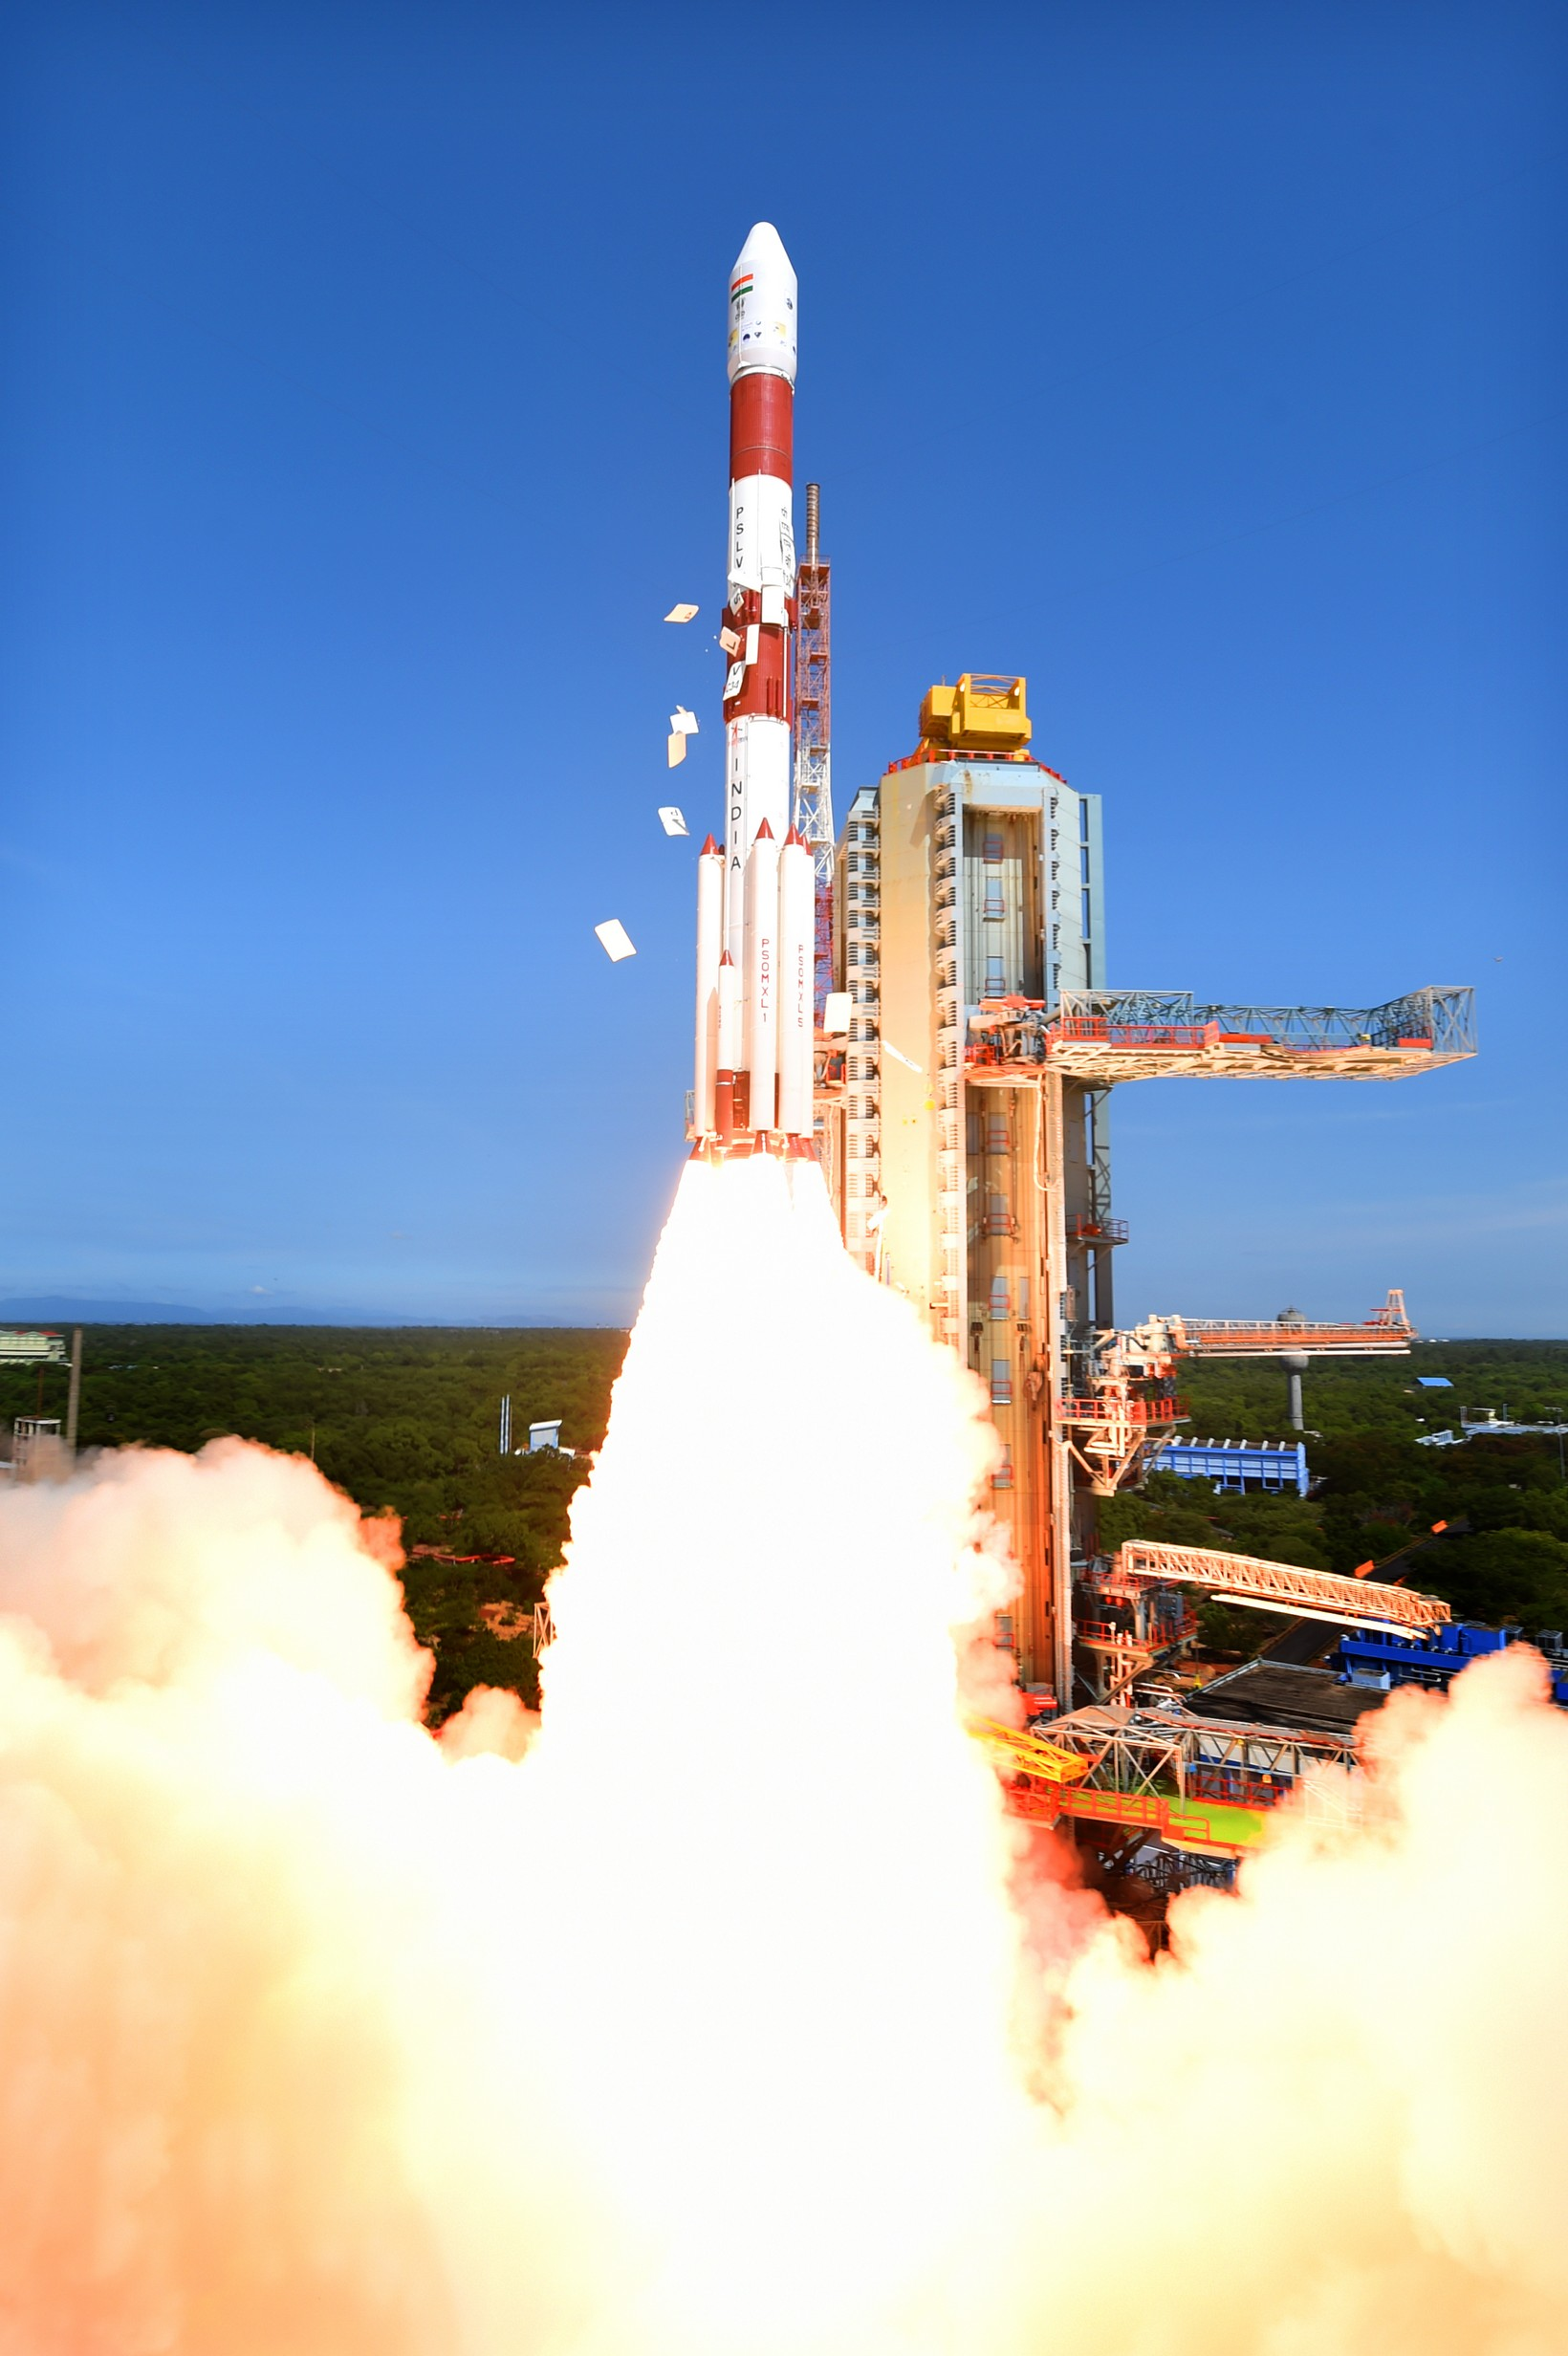 pslv-c34takeoff-view6